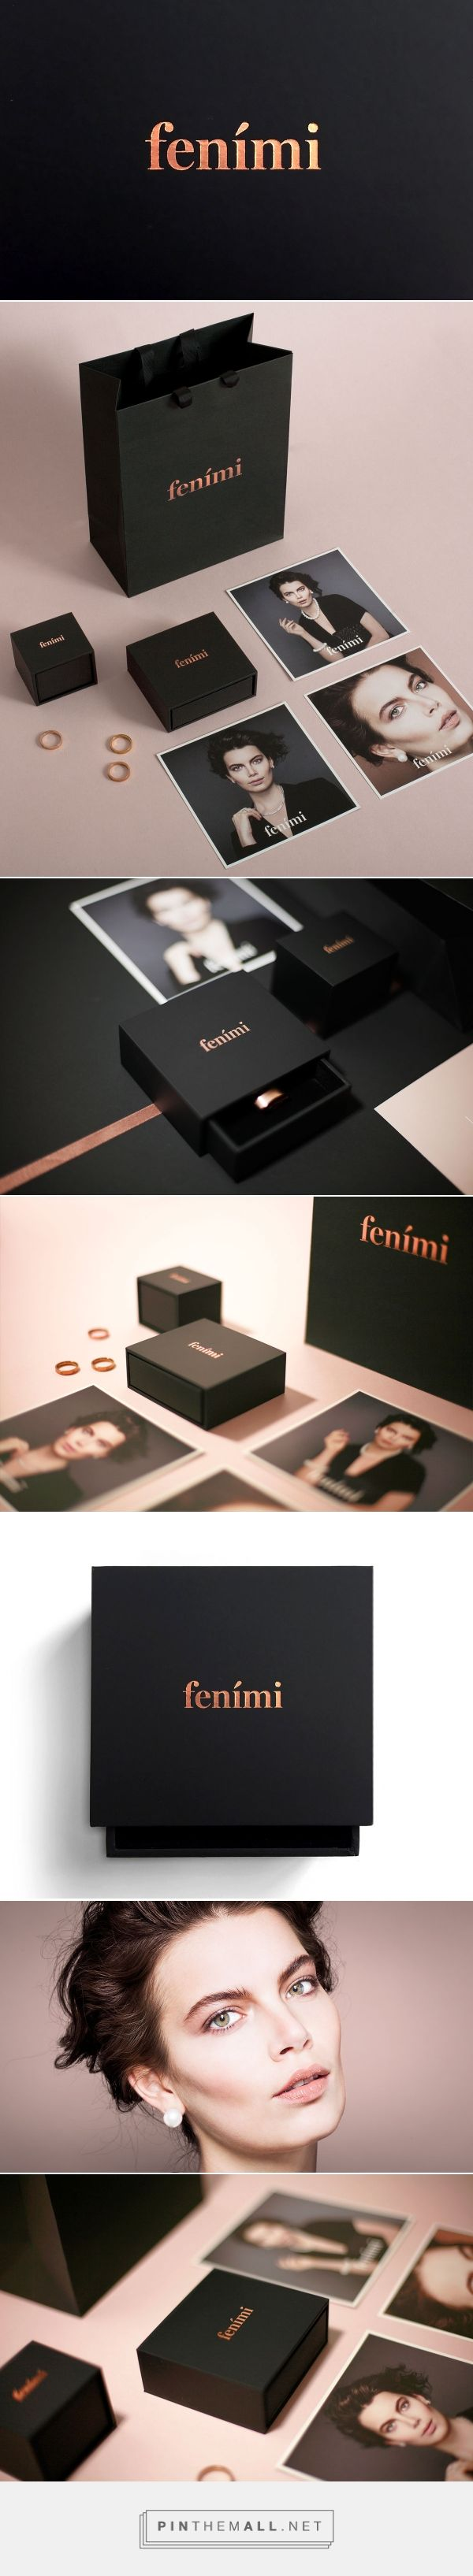 Fenimi Jewelry Branding by Ontwerpbureau Reiters | Fivestar Branding – Design and Branding Agency & Inspiration Gallery | #BrandingInspiration